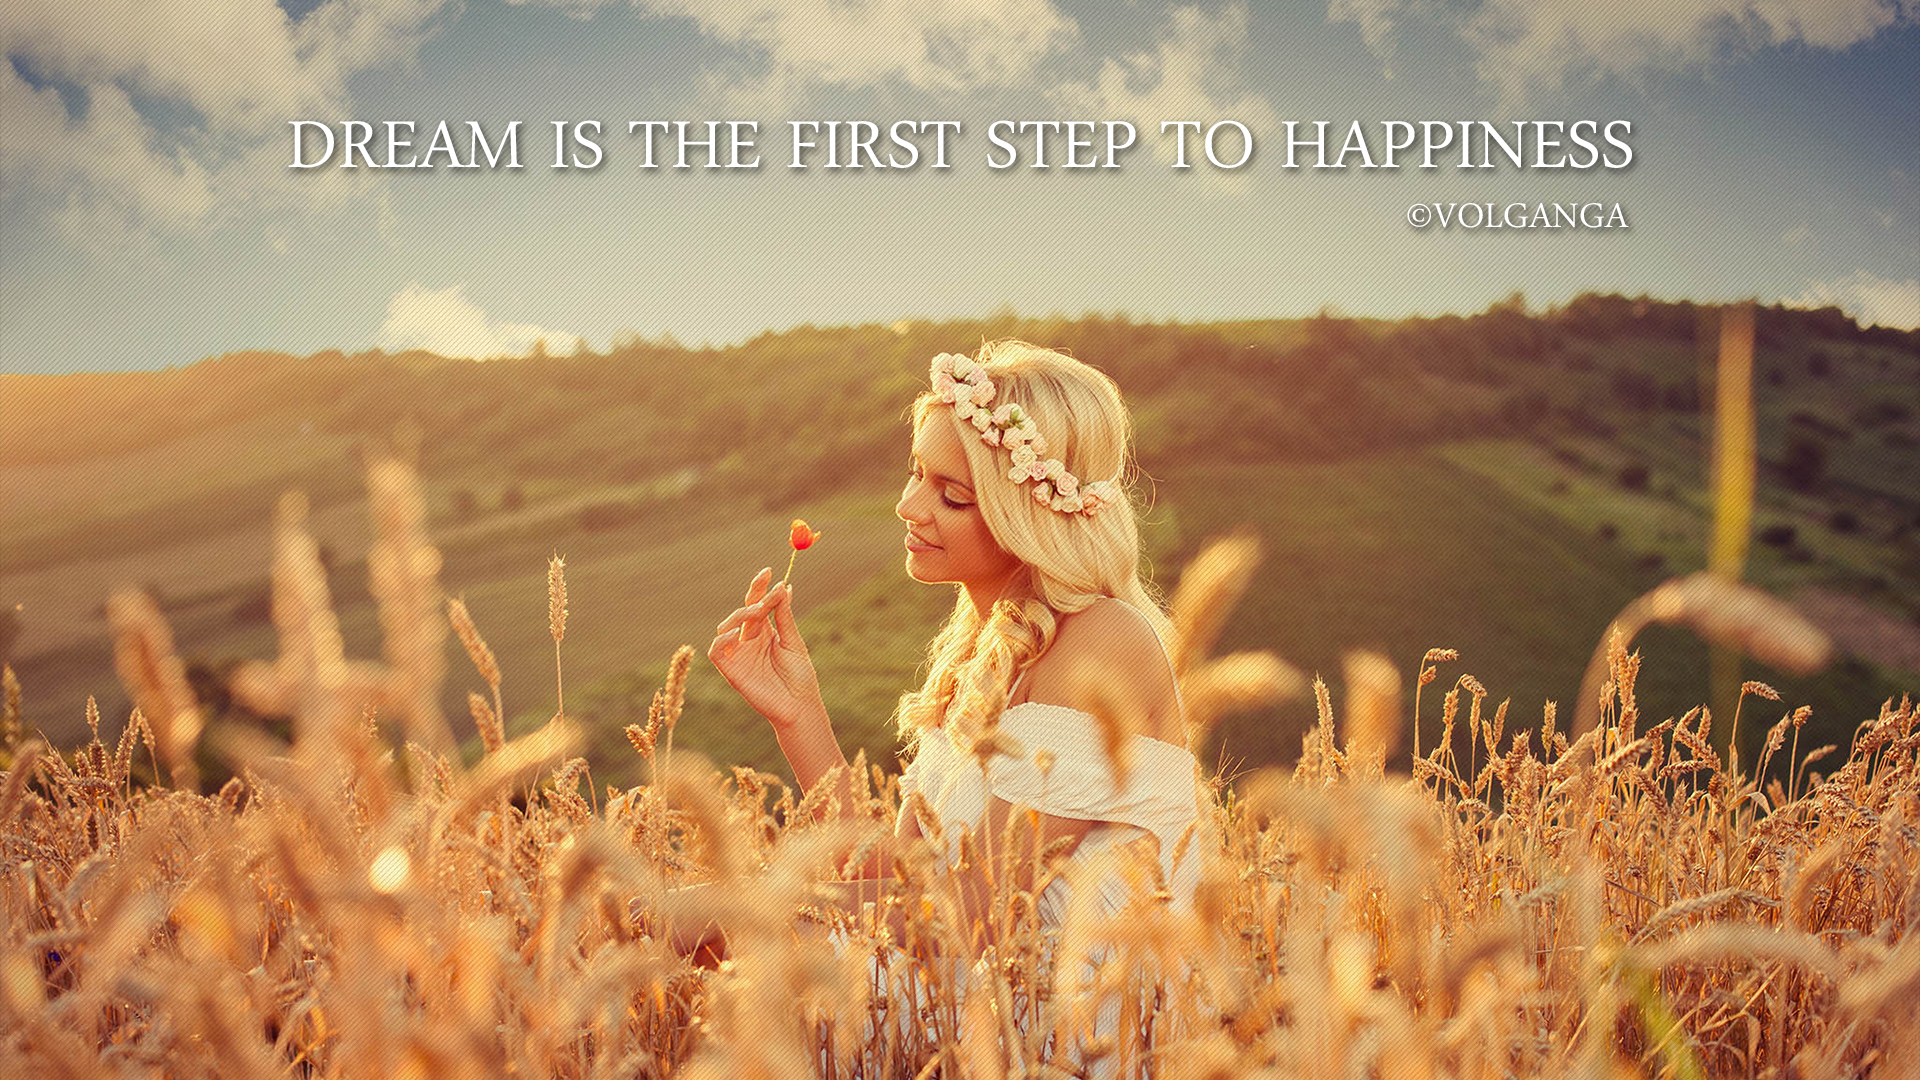 inspirational dreams quotes in hd volganga